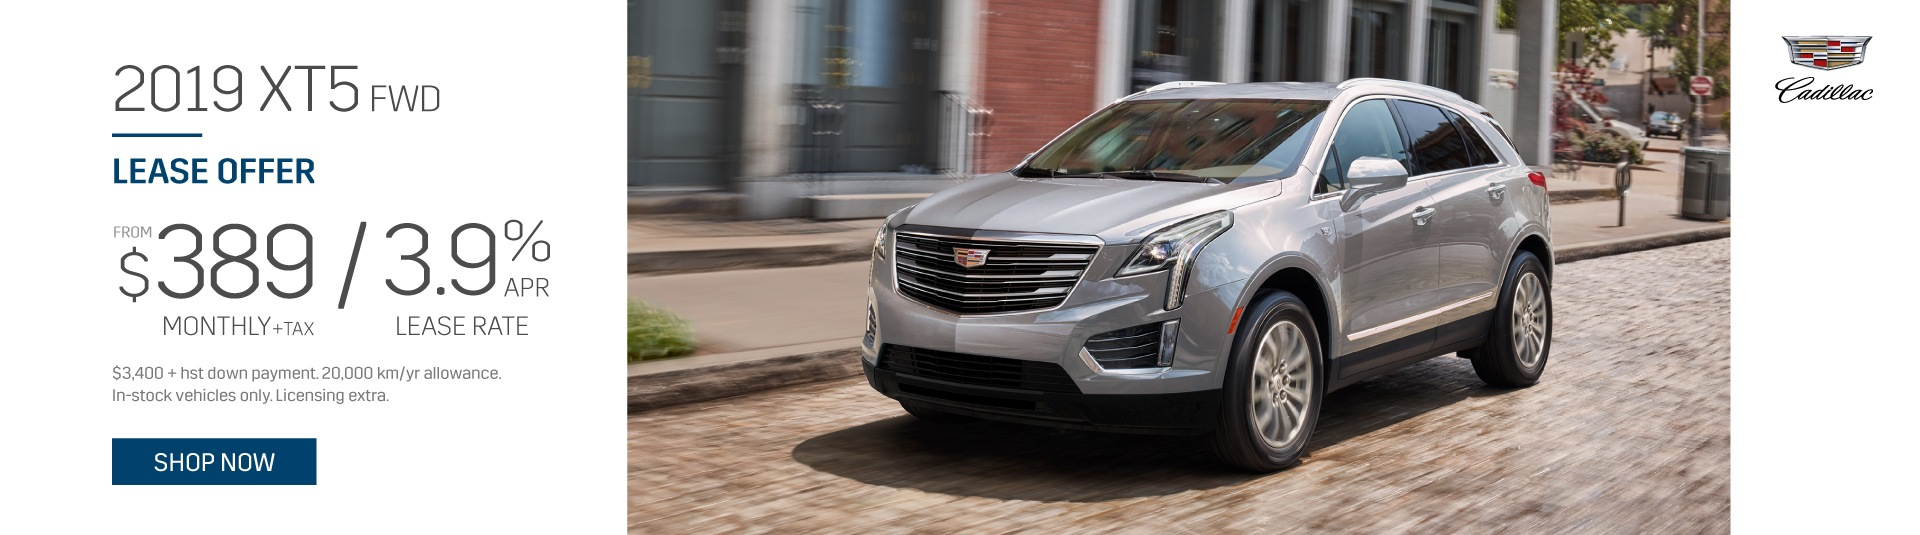 Cadillac XT5 Lease Offer in Toronto